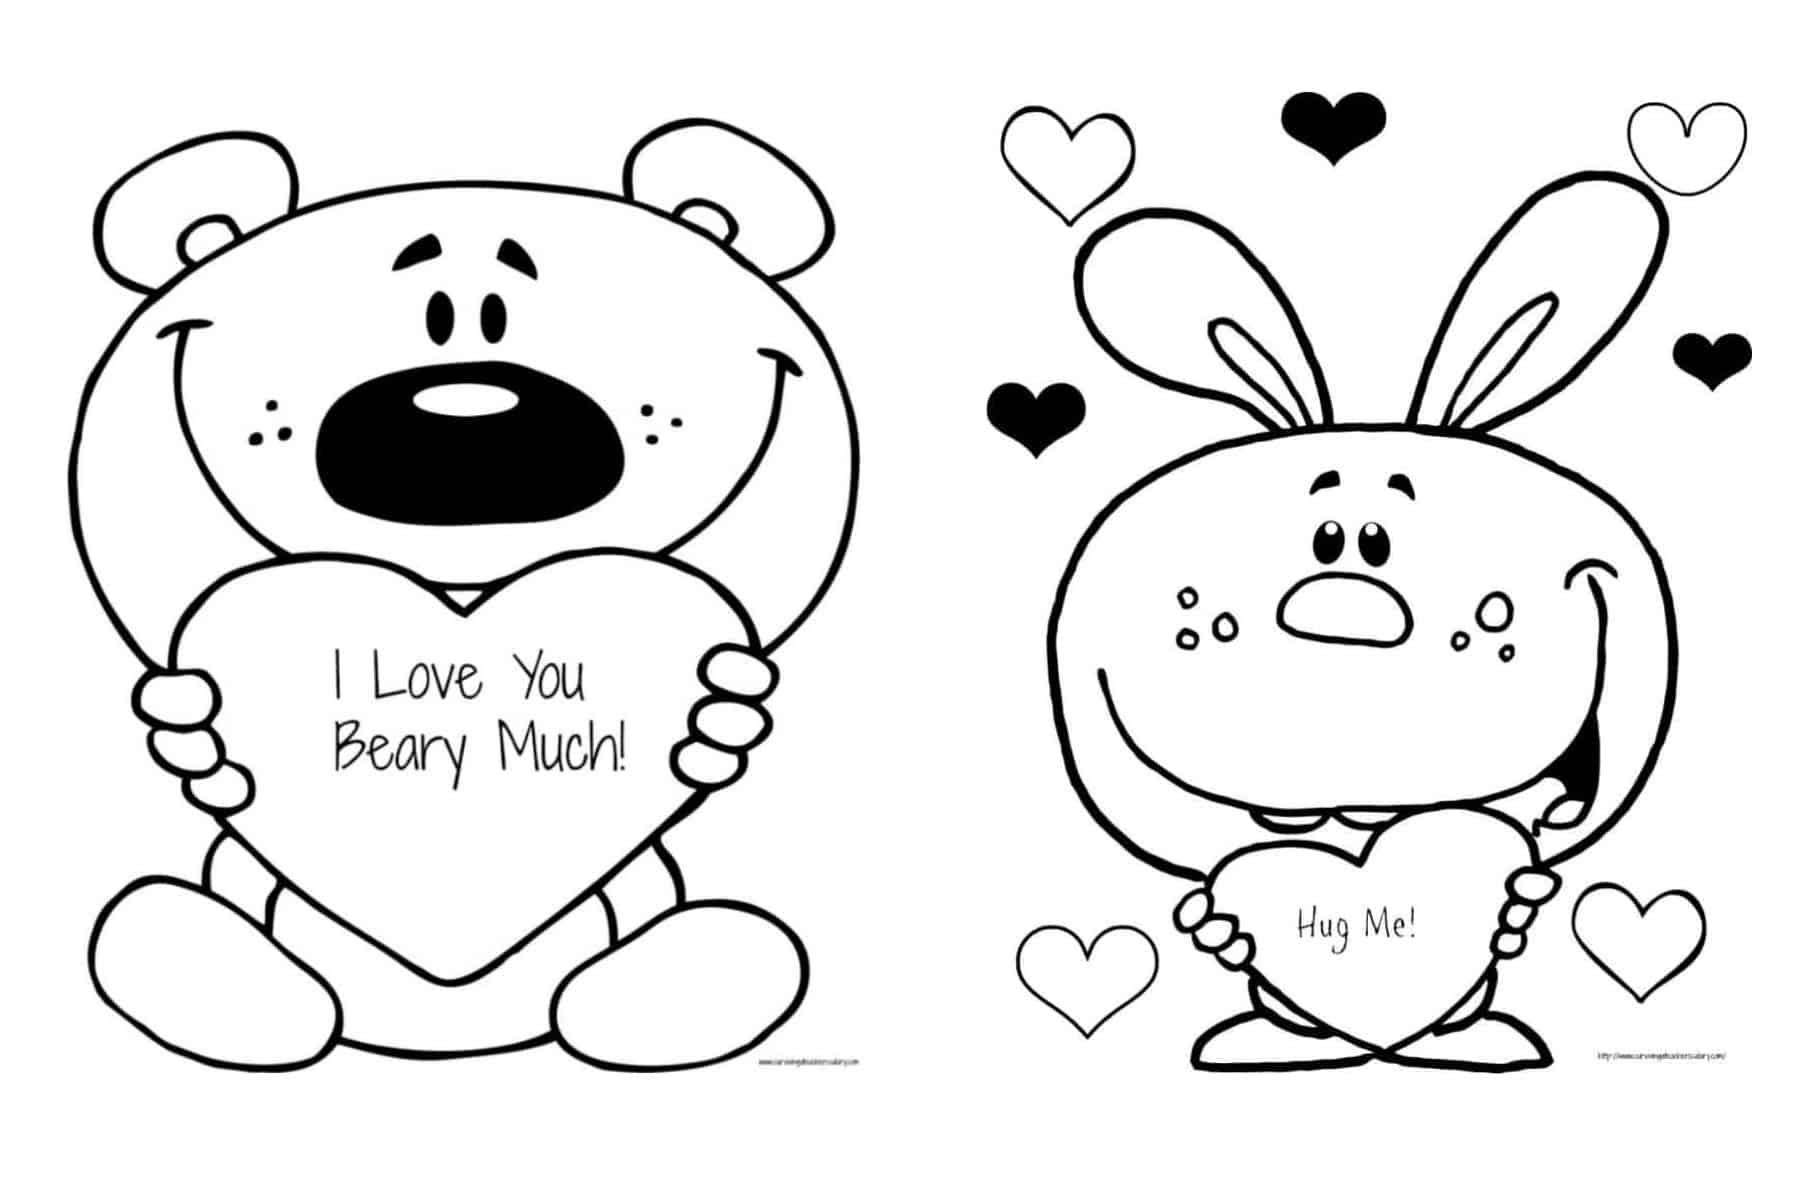 Free Valentine S I Love You Beary Much Coloring Page Printable In 2021 Love Coloring Pages Love You Cute Mom Coloring Pages